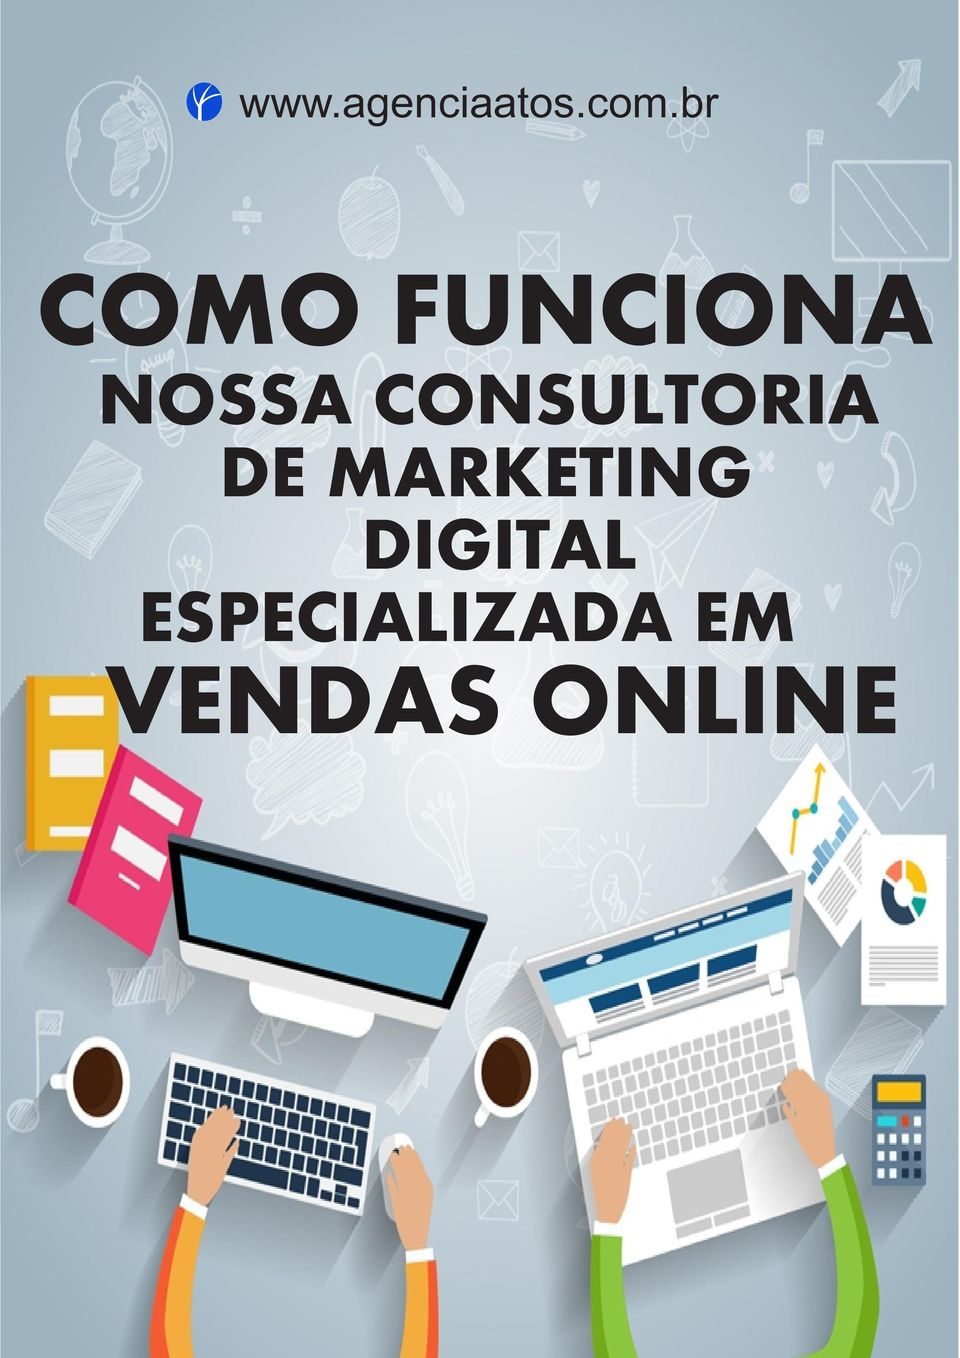 CONSULTORIA DE MARKETING